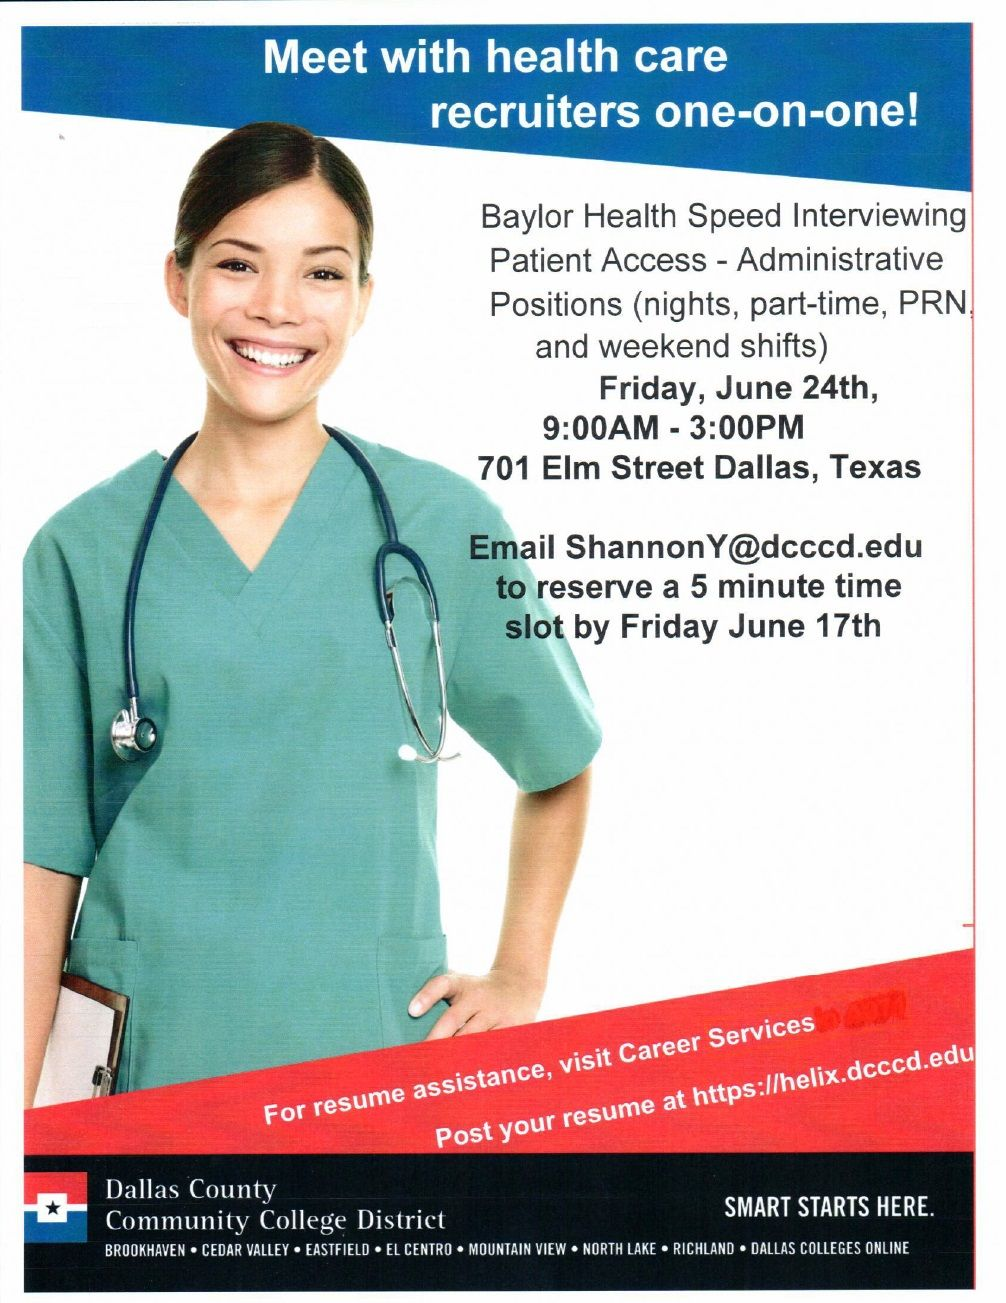 Dcccds healthcare resource center and baylor are